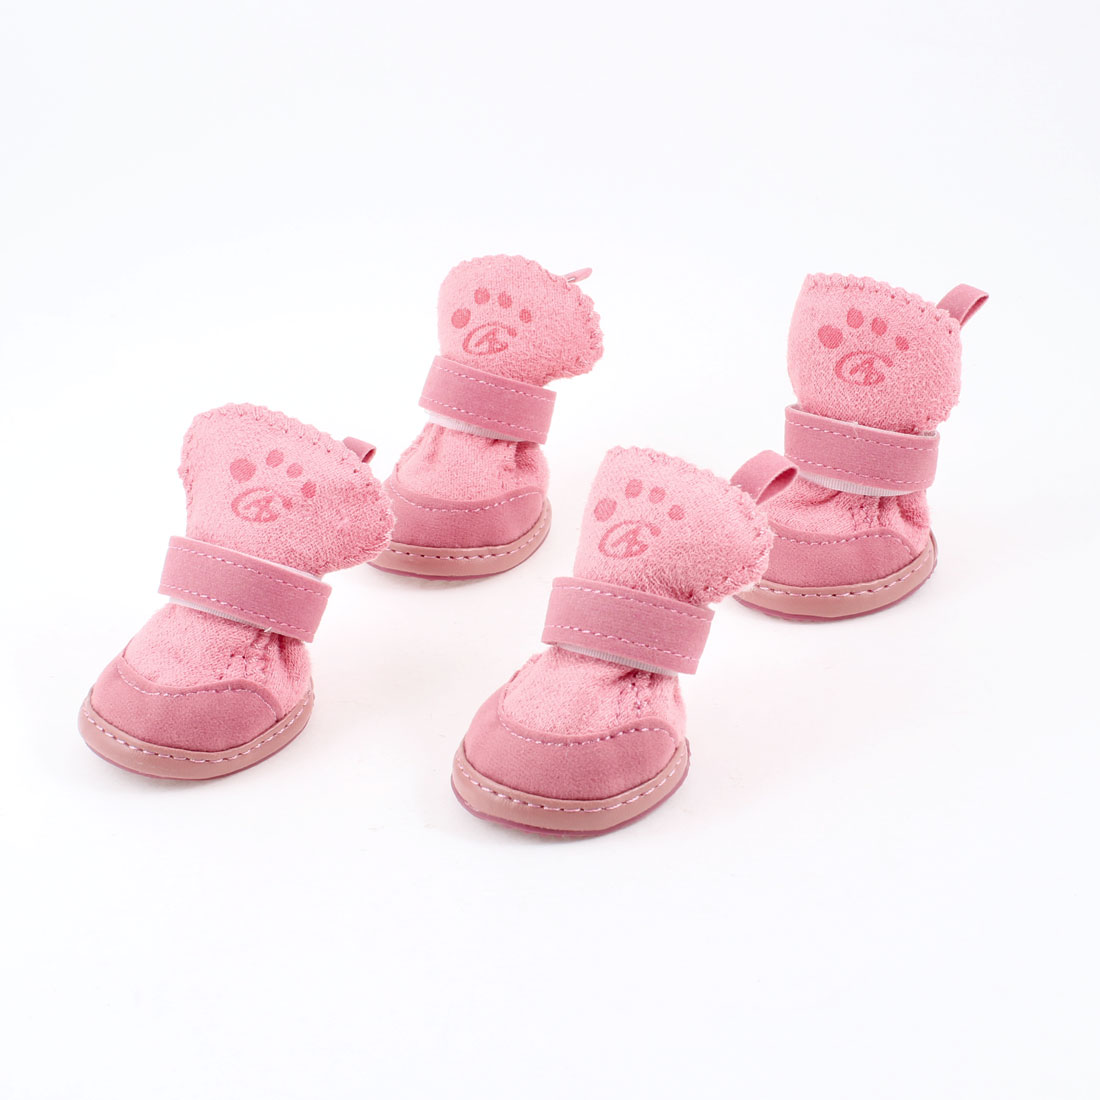 Pink Nonslip Sole Hook and Loop Fastener Booties Pet Dog Chihuahua Shoes Boots 2 Pair XS